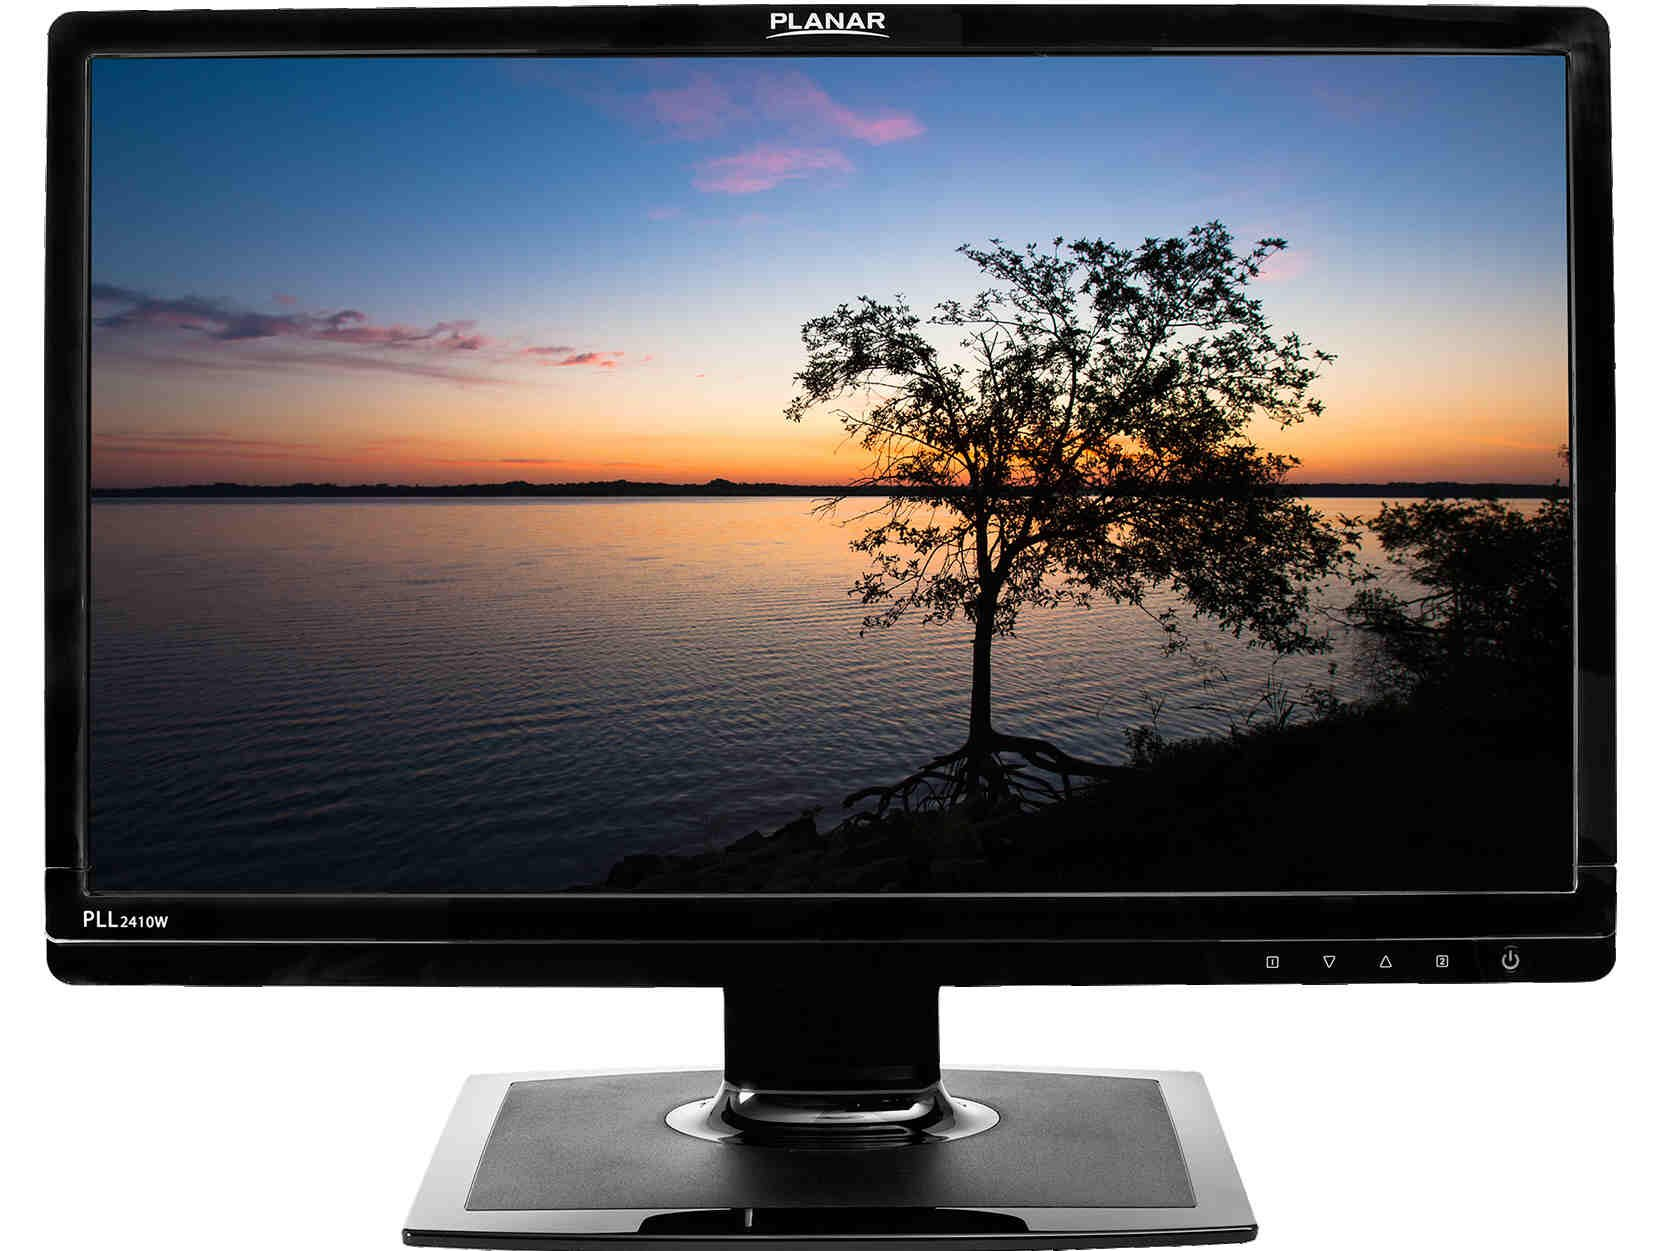 Planar PLL2410W 24'' Widescreen LED LCD Monitor